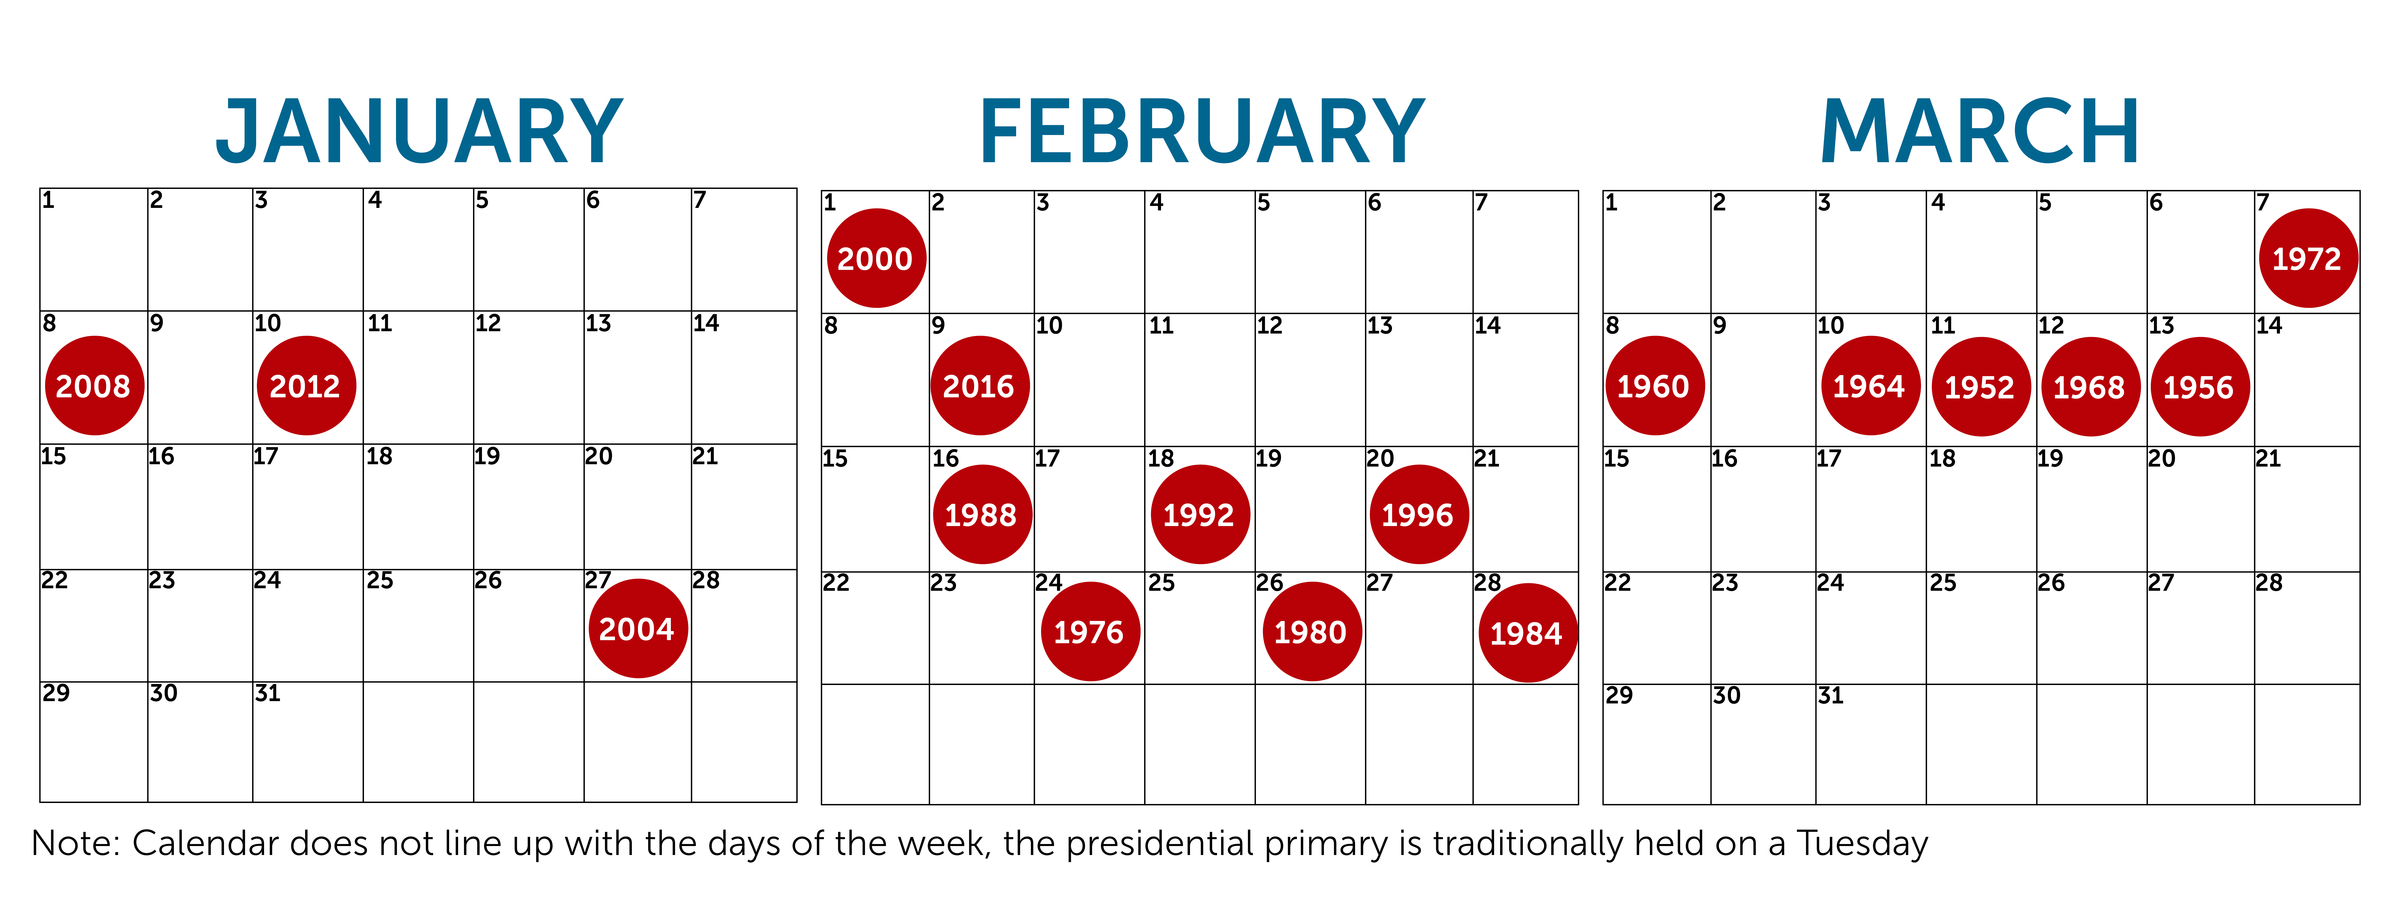 Presidential primary dates in Melbourne